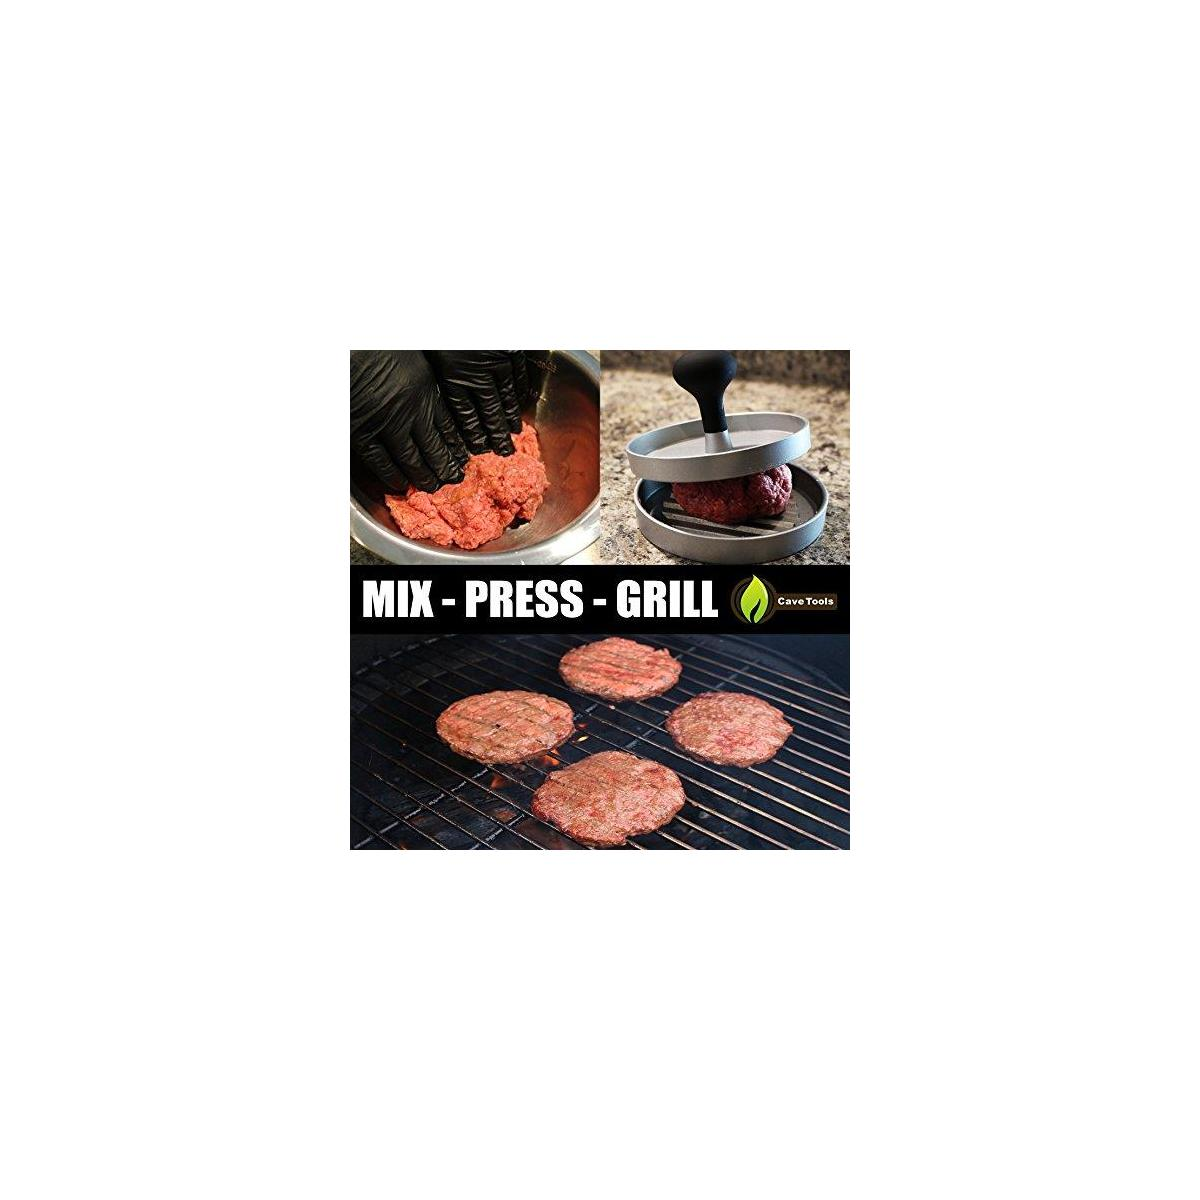 Burger Press + BBQ Grill Brush - New & Improved 100% Rust Proof Design - Stainless Steel Wire Bristle with Strength Clip for Cleaning Char Broil Weber Porcelain and Infrared Barbecue Grates